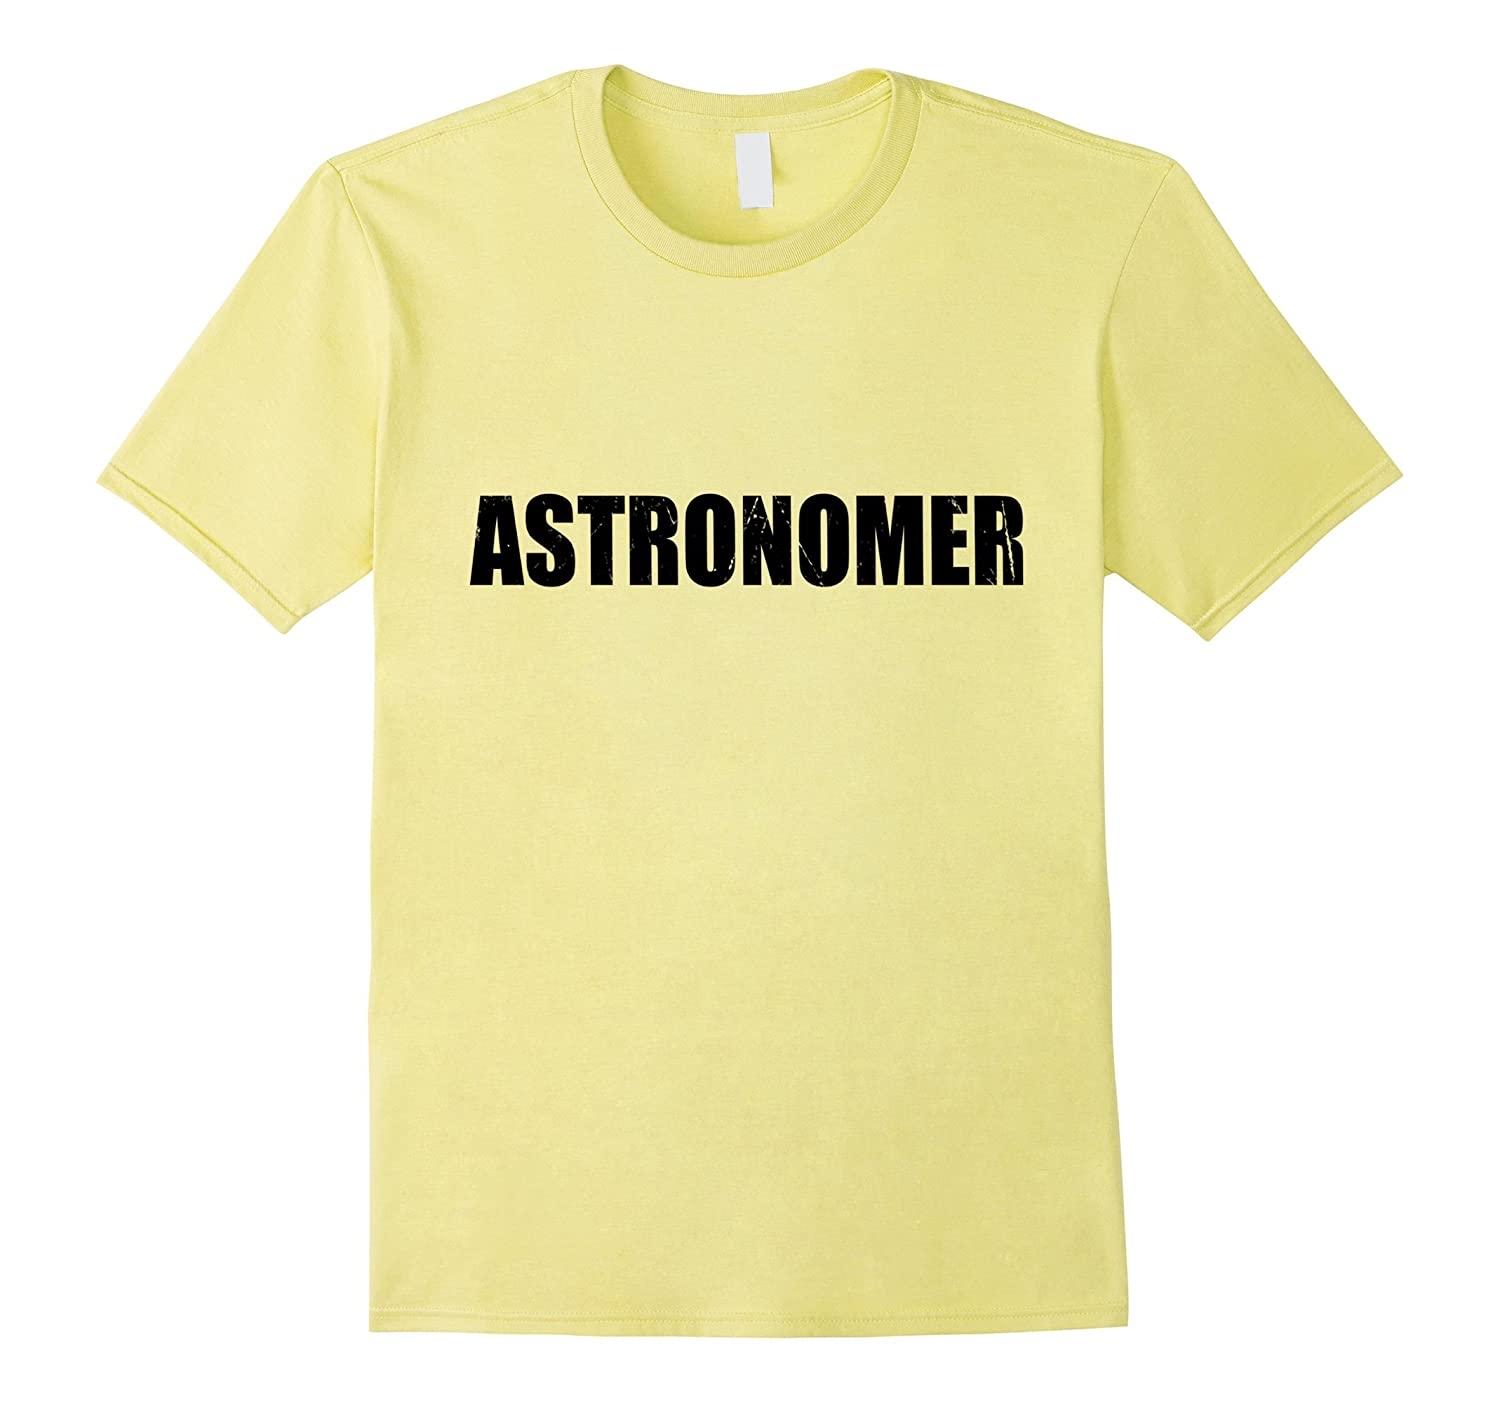 Astronomer T Shirt Halloween Costume Funny Cute Distressed-PL